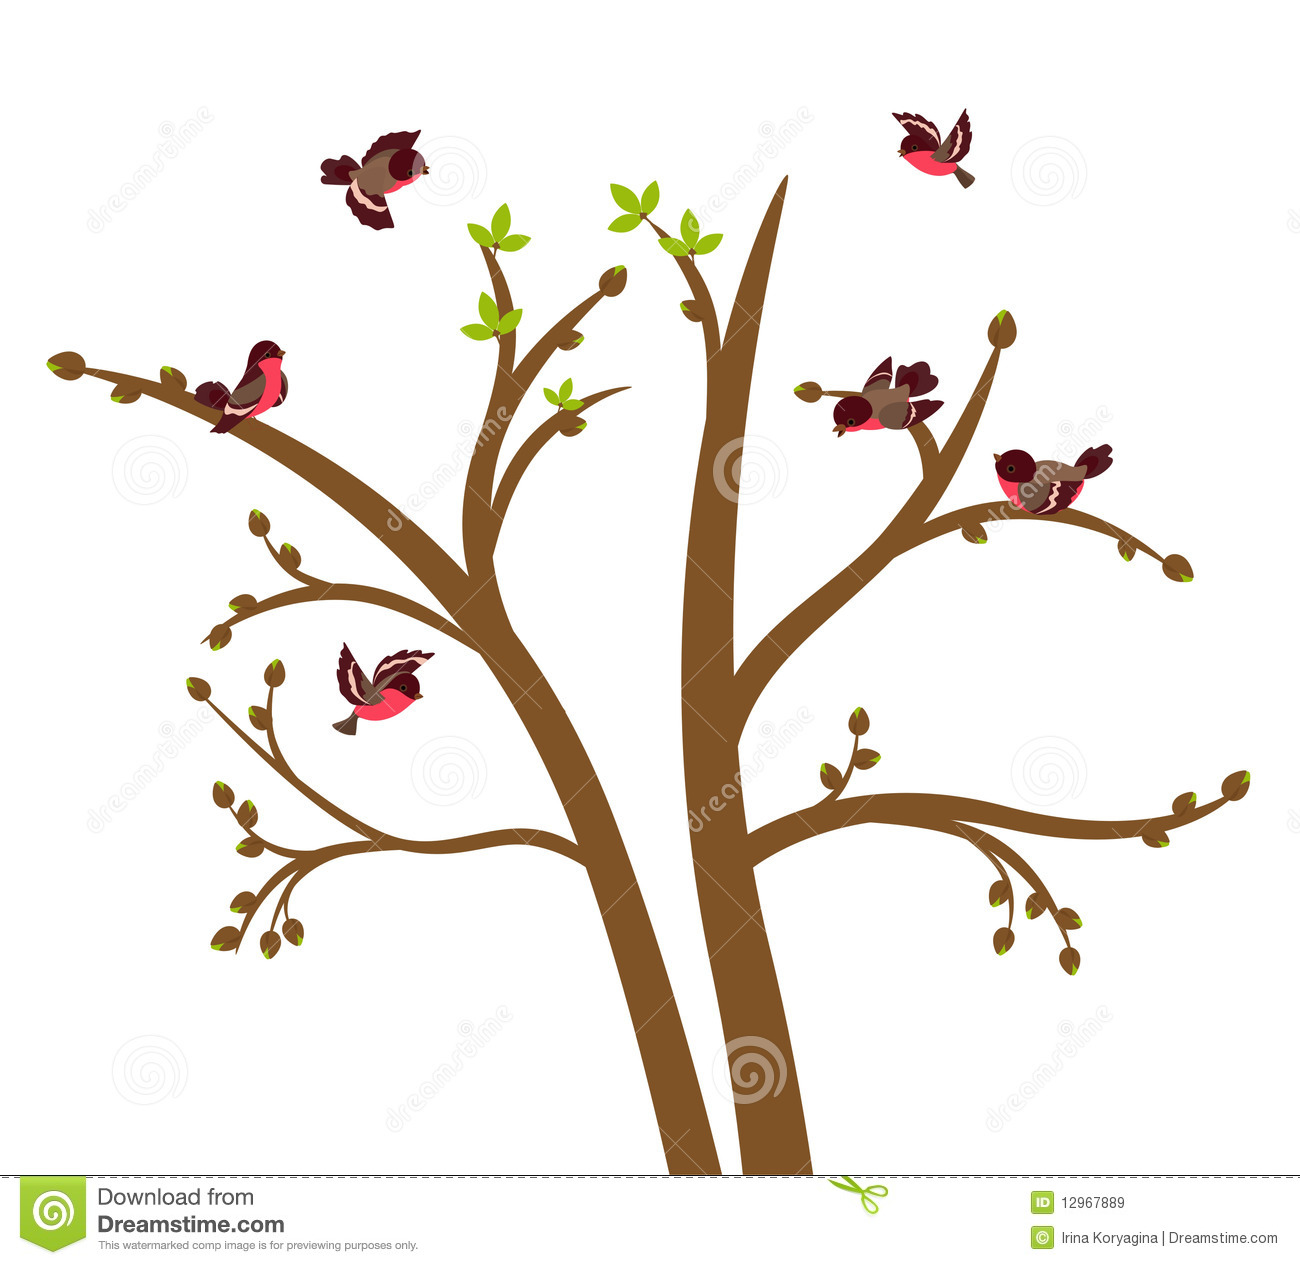 Royalty Free Stock Images Little Birds Chirp Spring Tree Image12967889